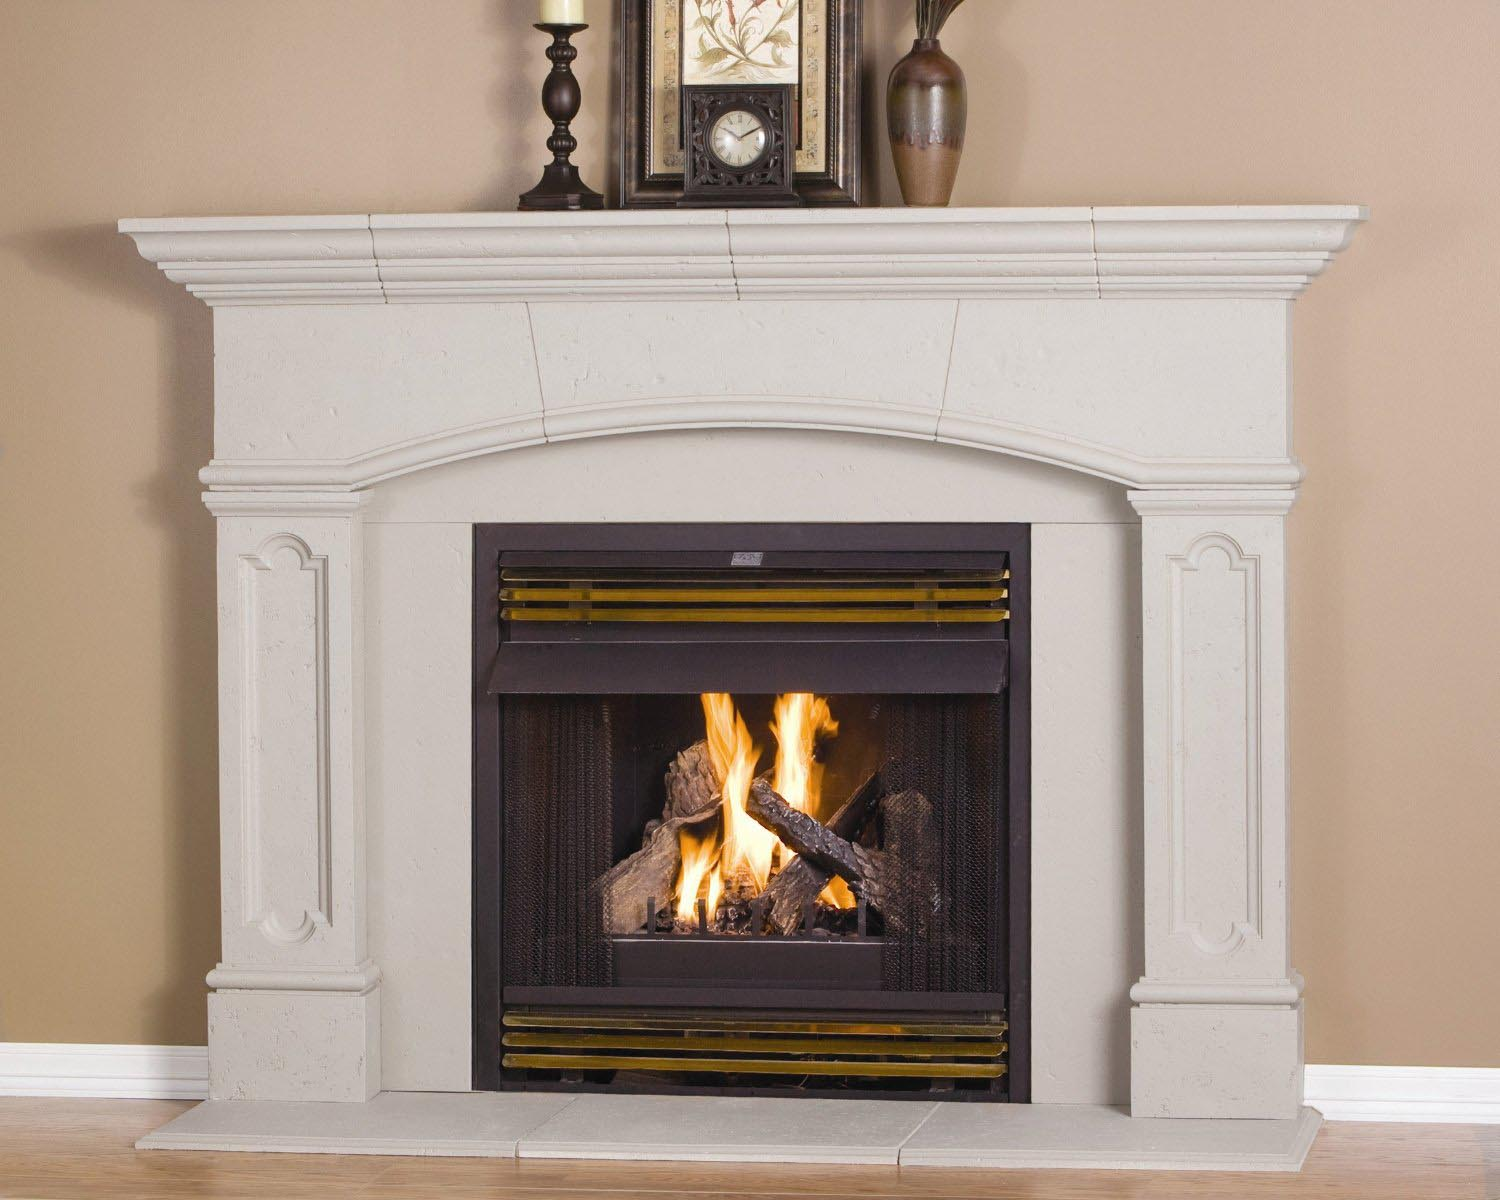 Fireplace mantel surrounds ideas fireplace designs Fireplace surround ideas